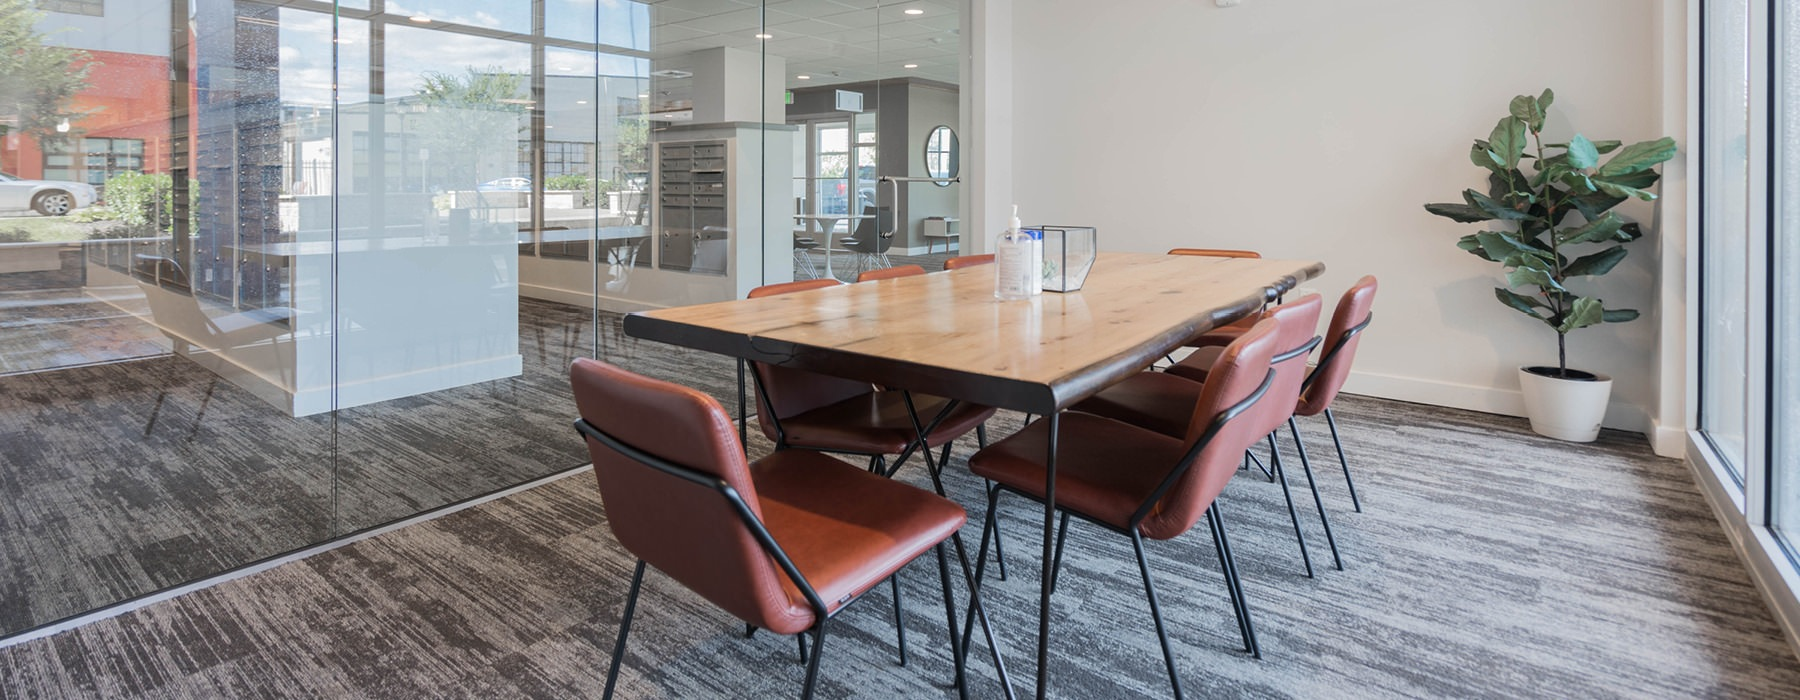 glass enclosed conference room with floor-to-ceiling windows